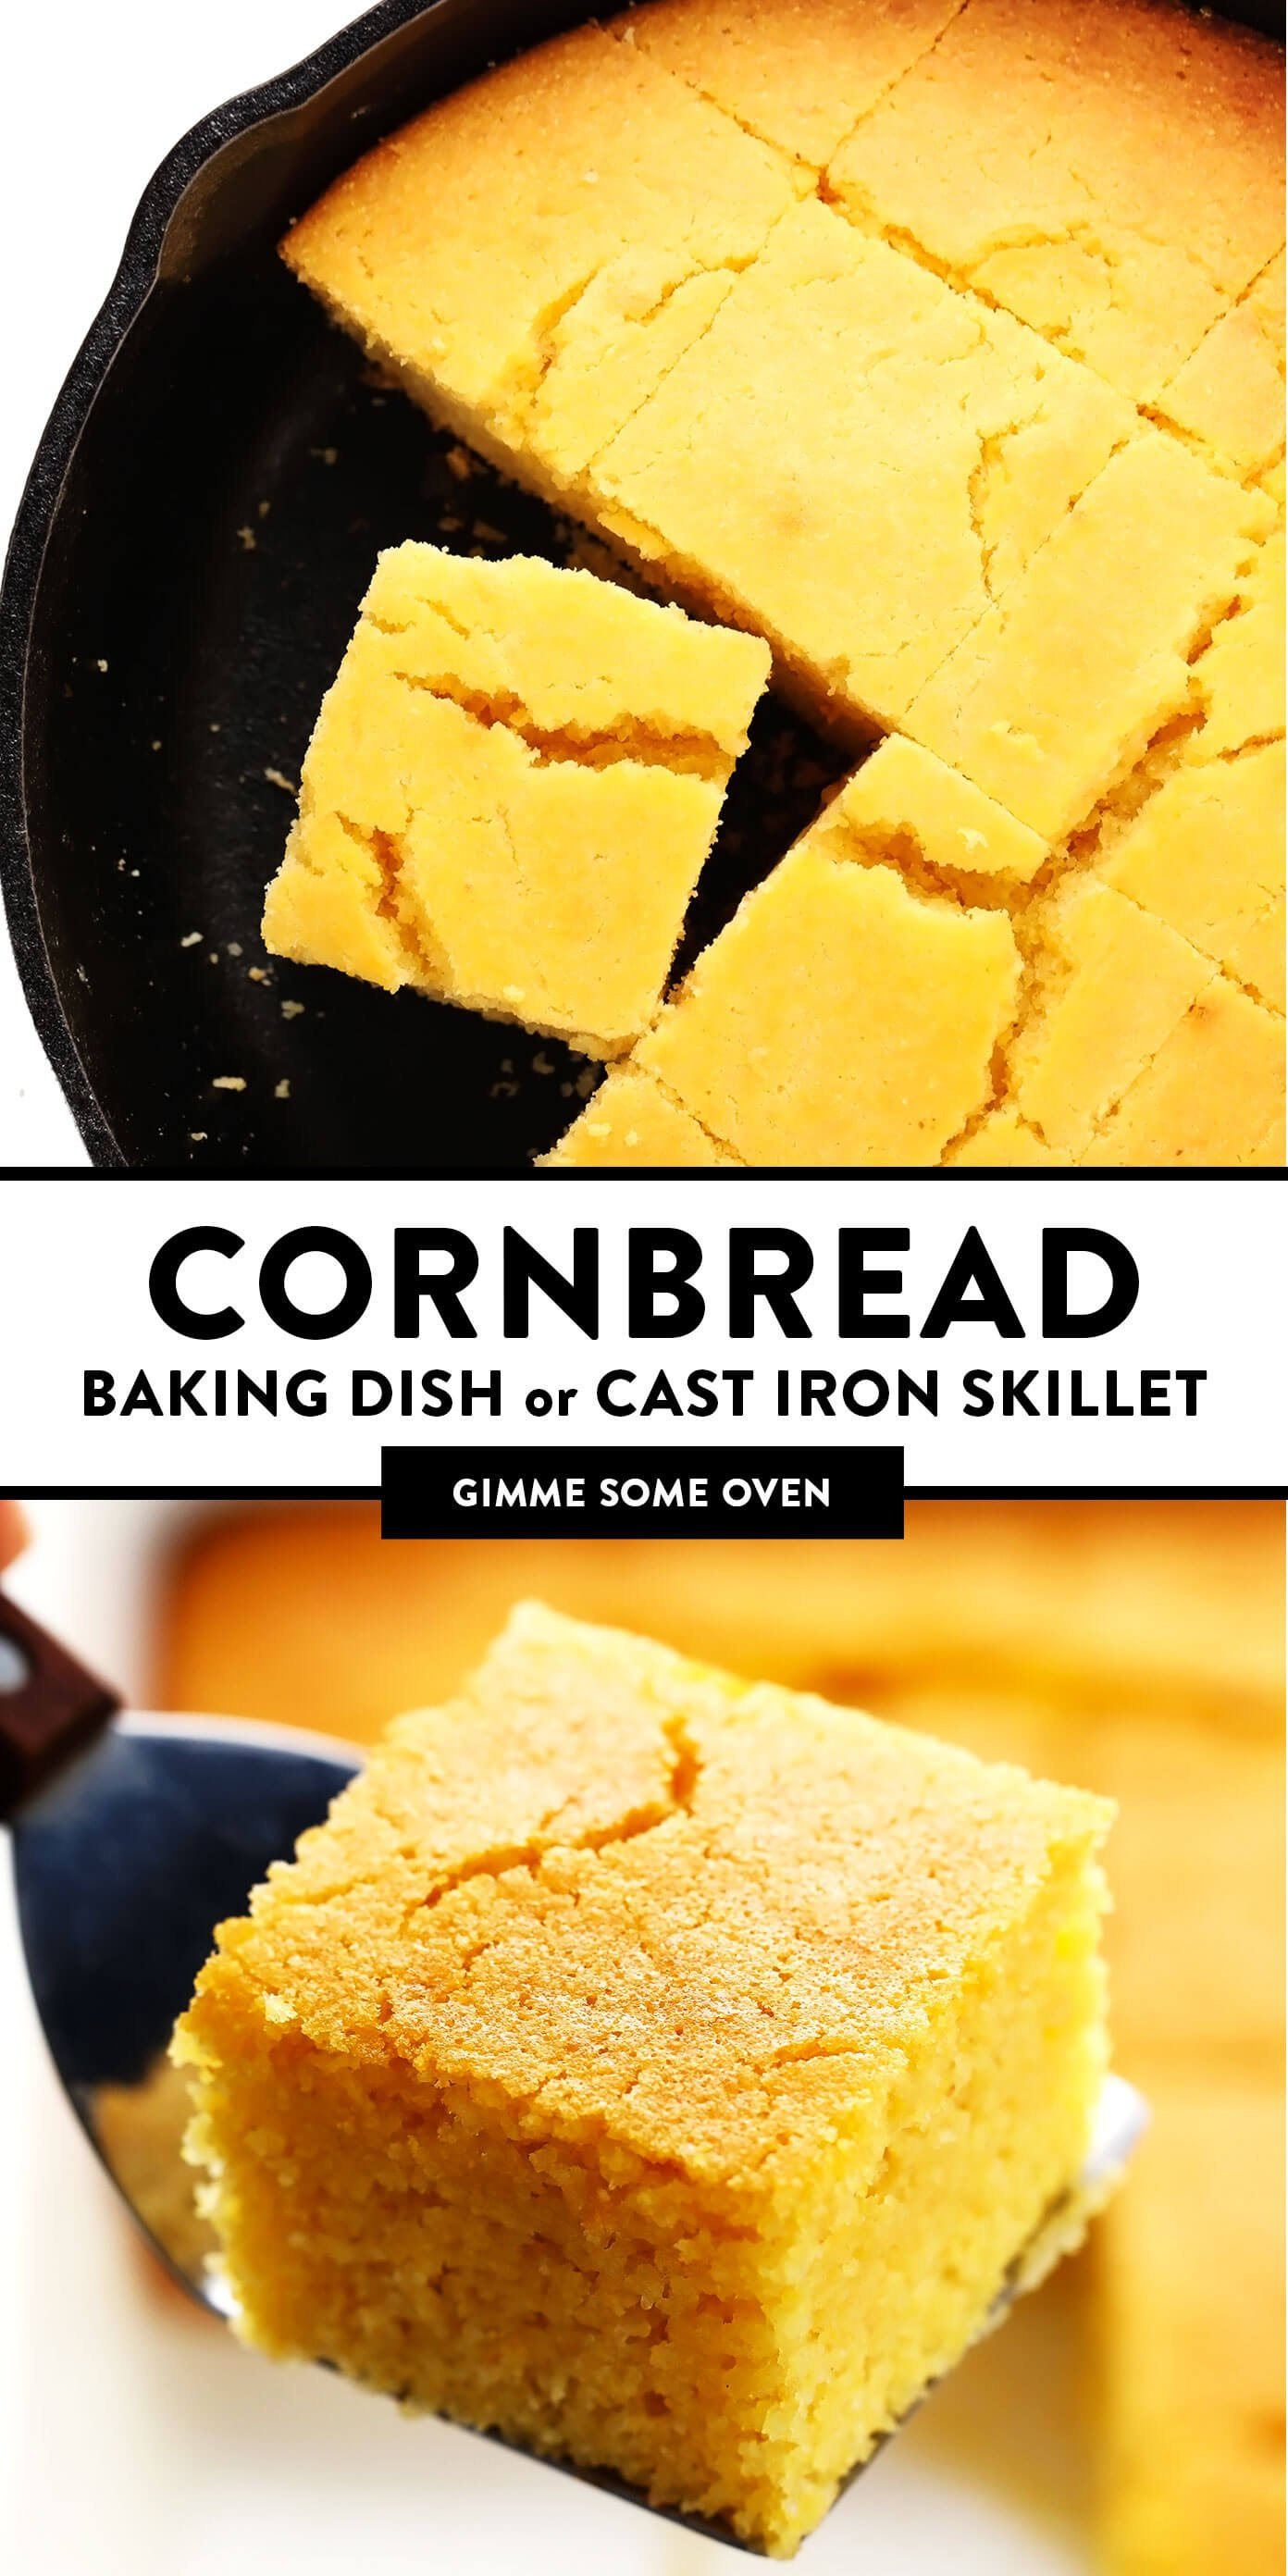 Cornbread | Baking Dish or Cast Iron Skillet